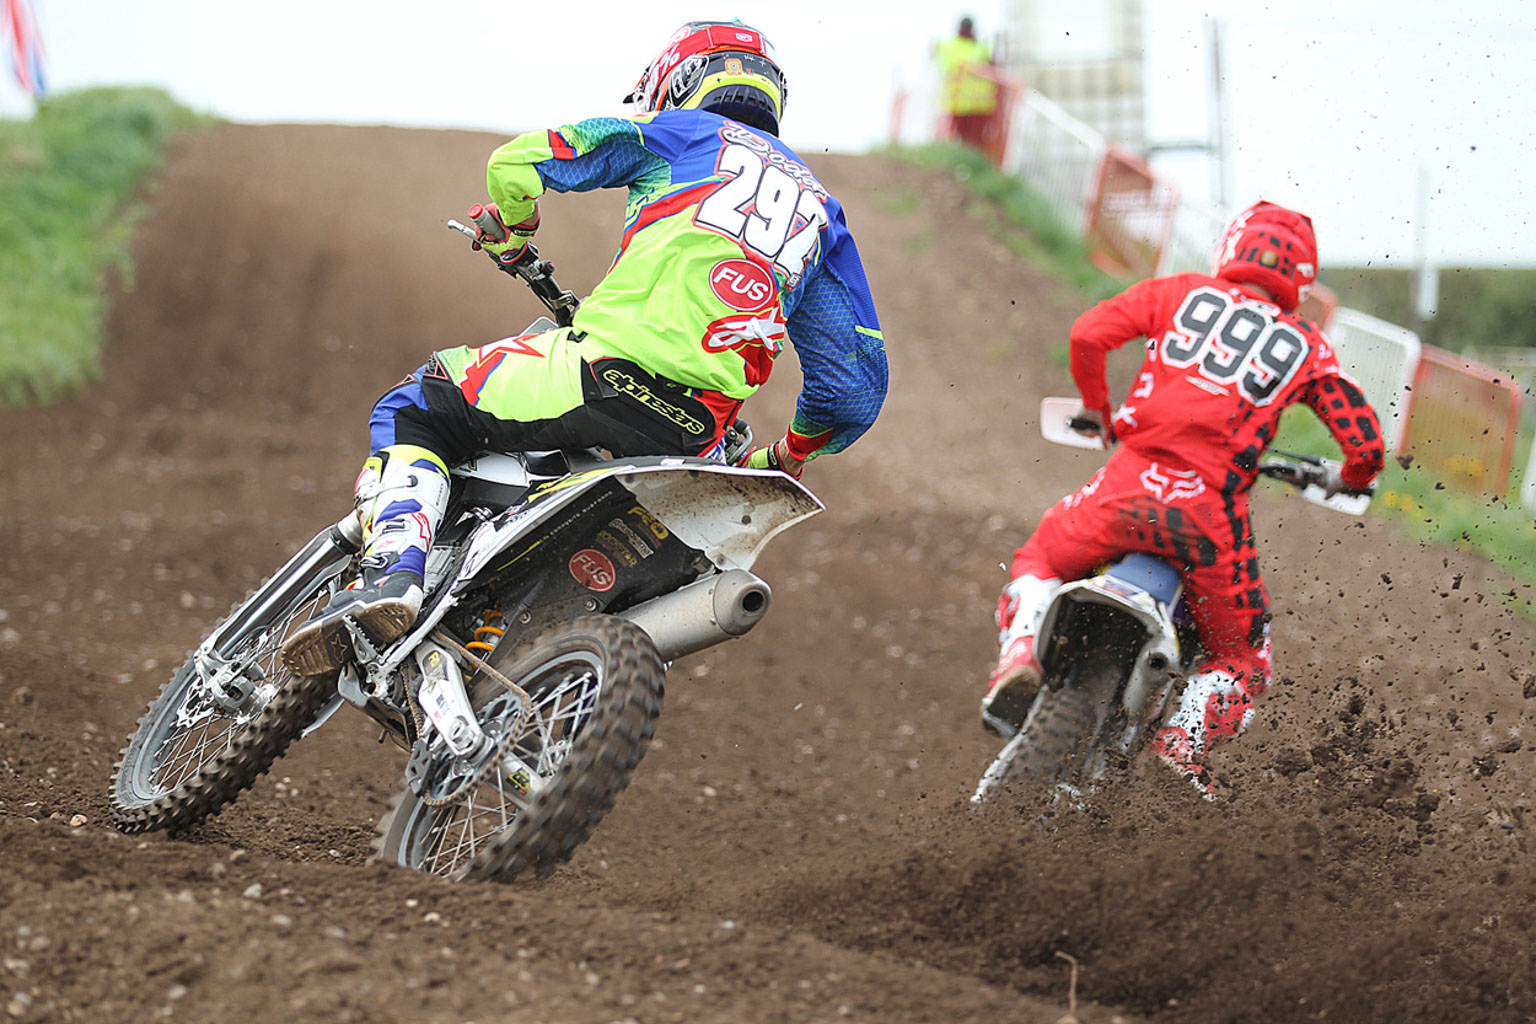 James Dodd(292) chasing Richard Cannings in MX1